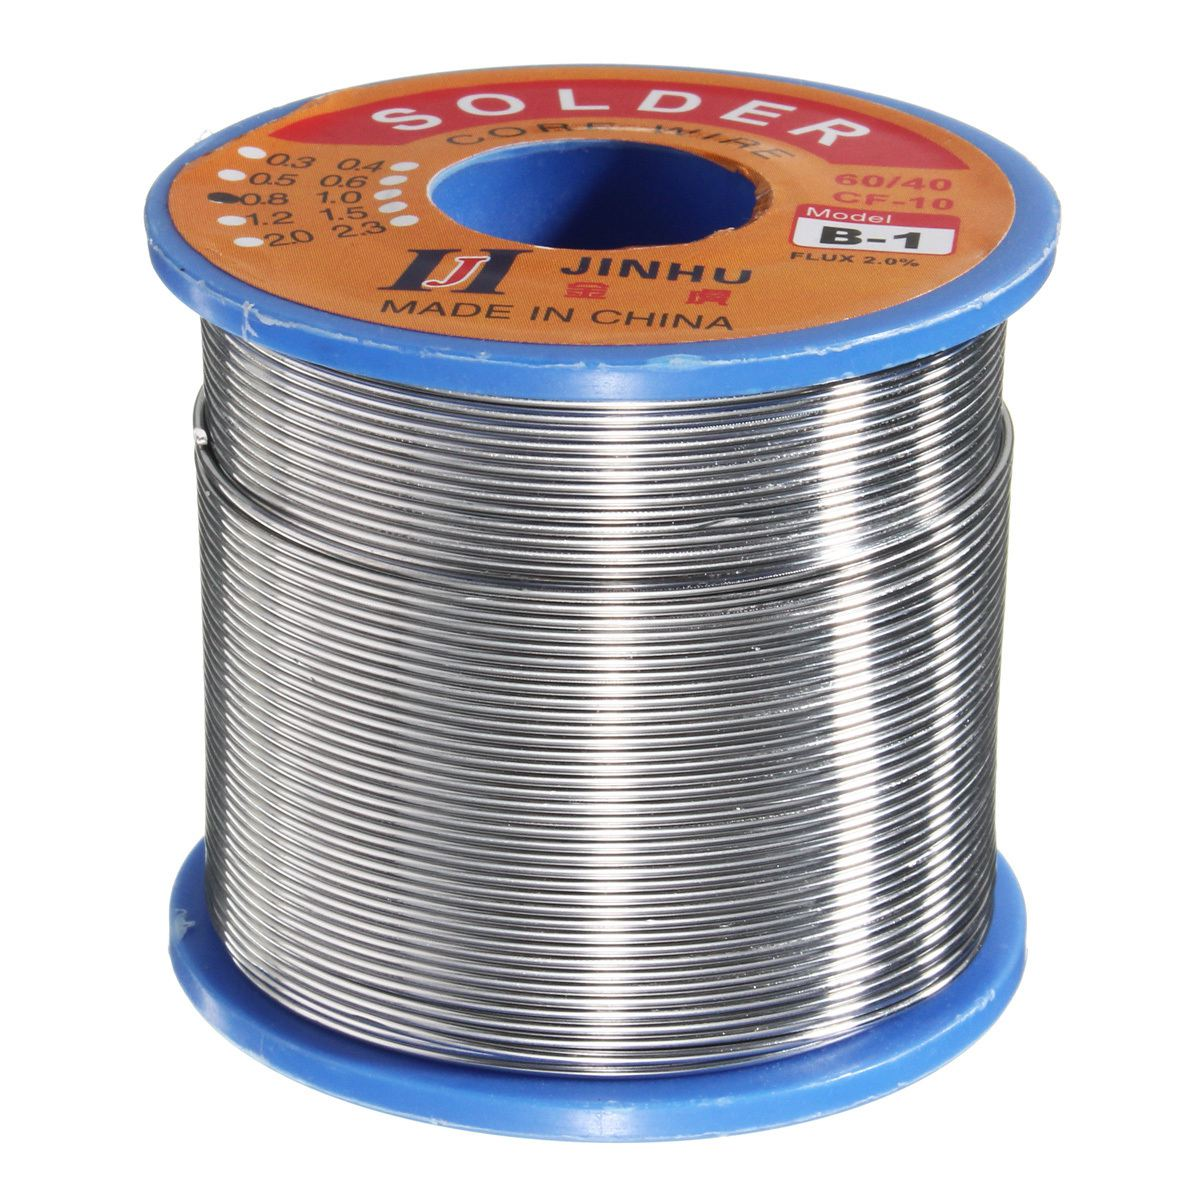 JINHU 500g 60/40 Tin lead Solder Wire Rosin Core Soldering 2% Flux ...